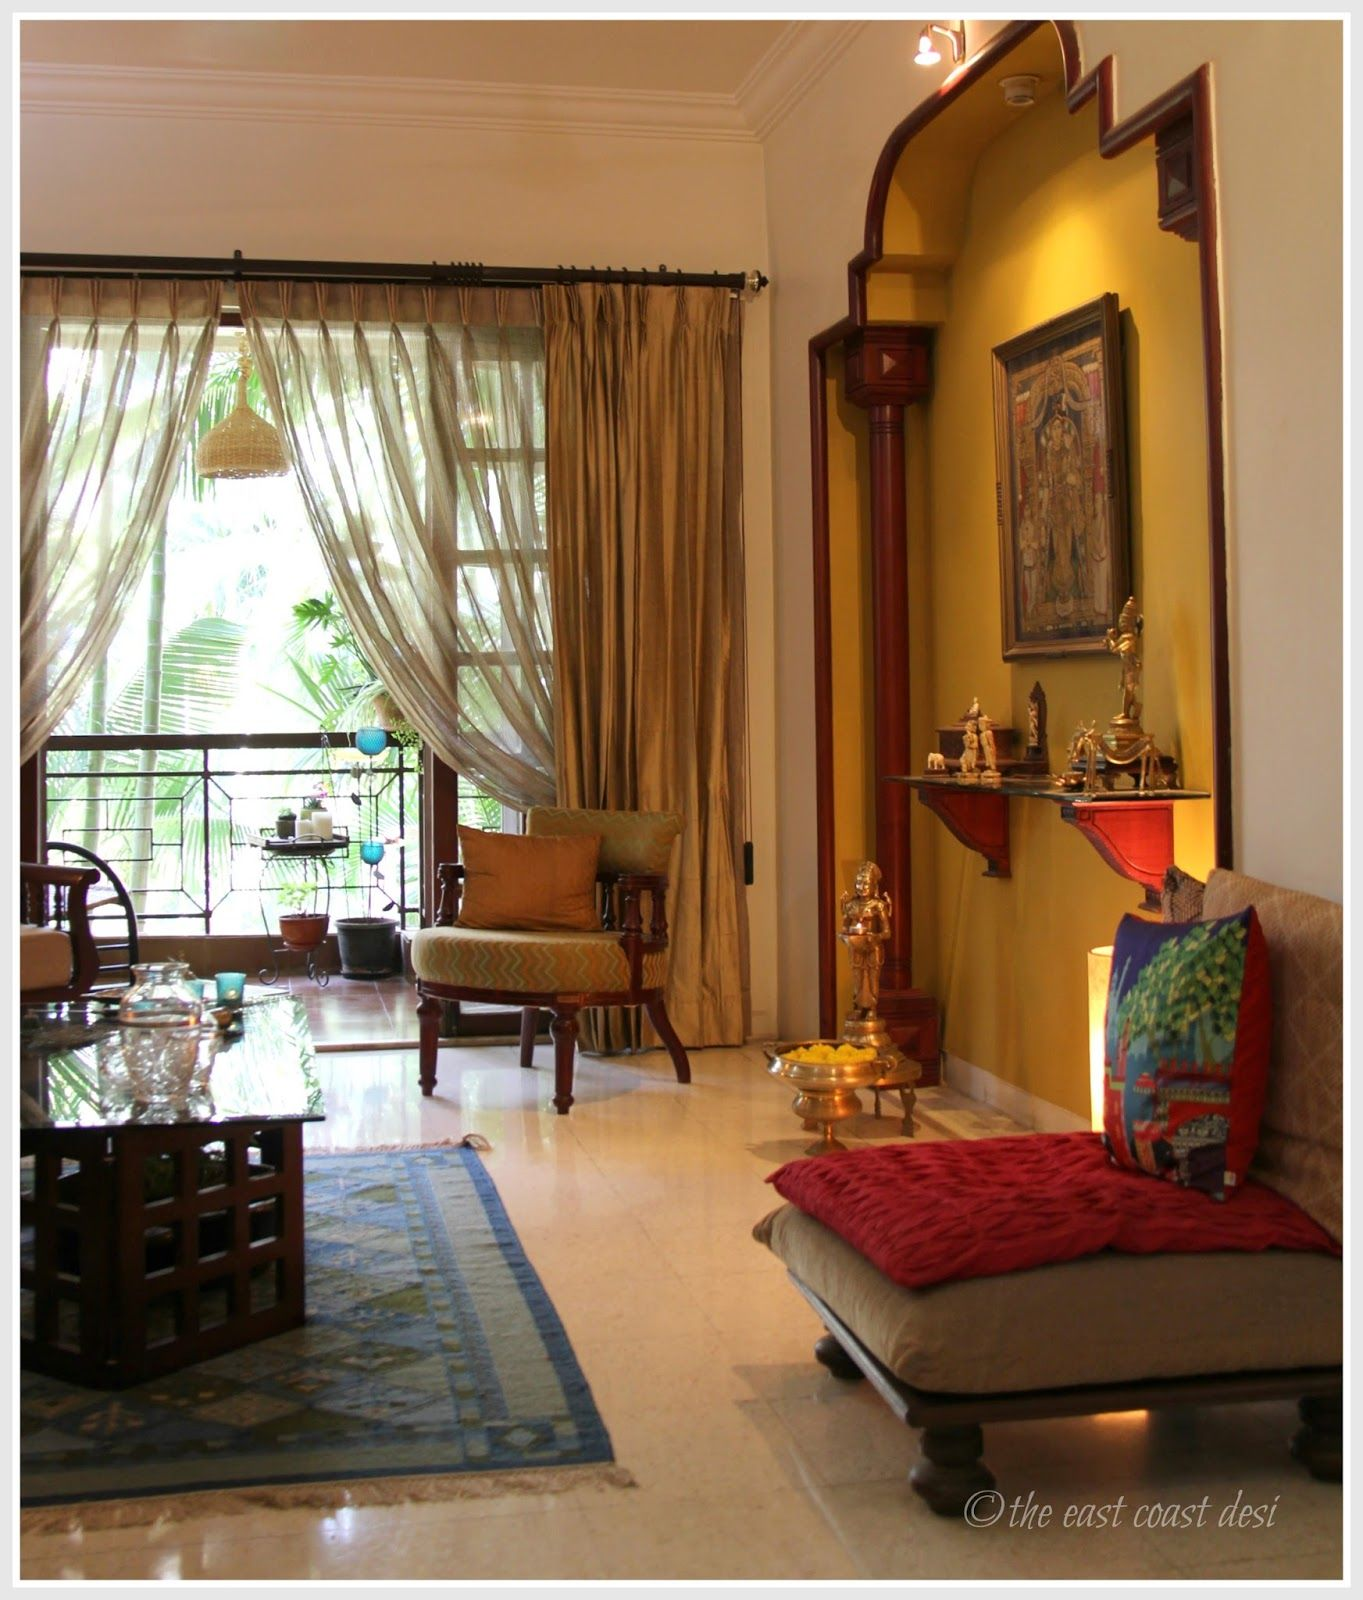 The east coast desi living with what you love home tour more also  rh ar pinterest